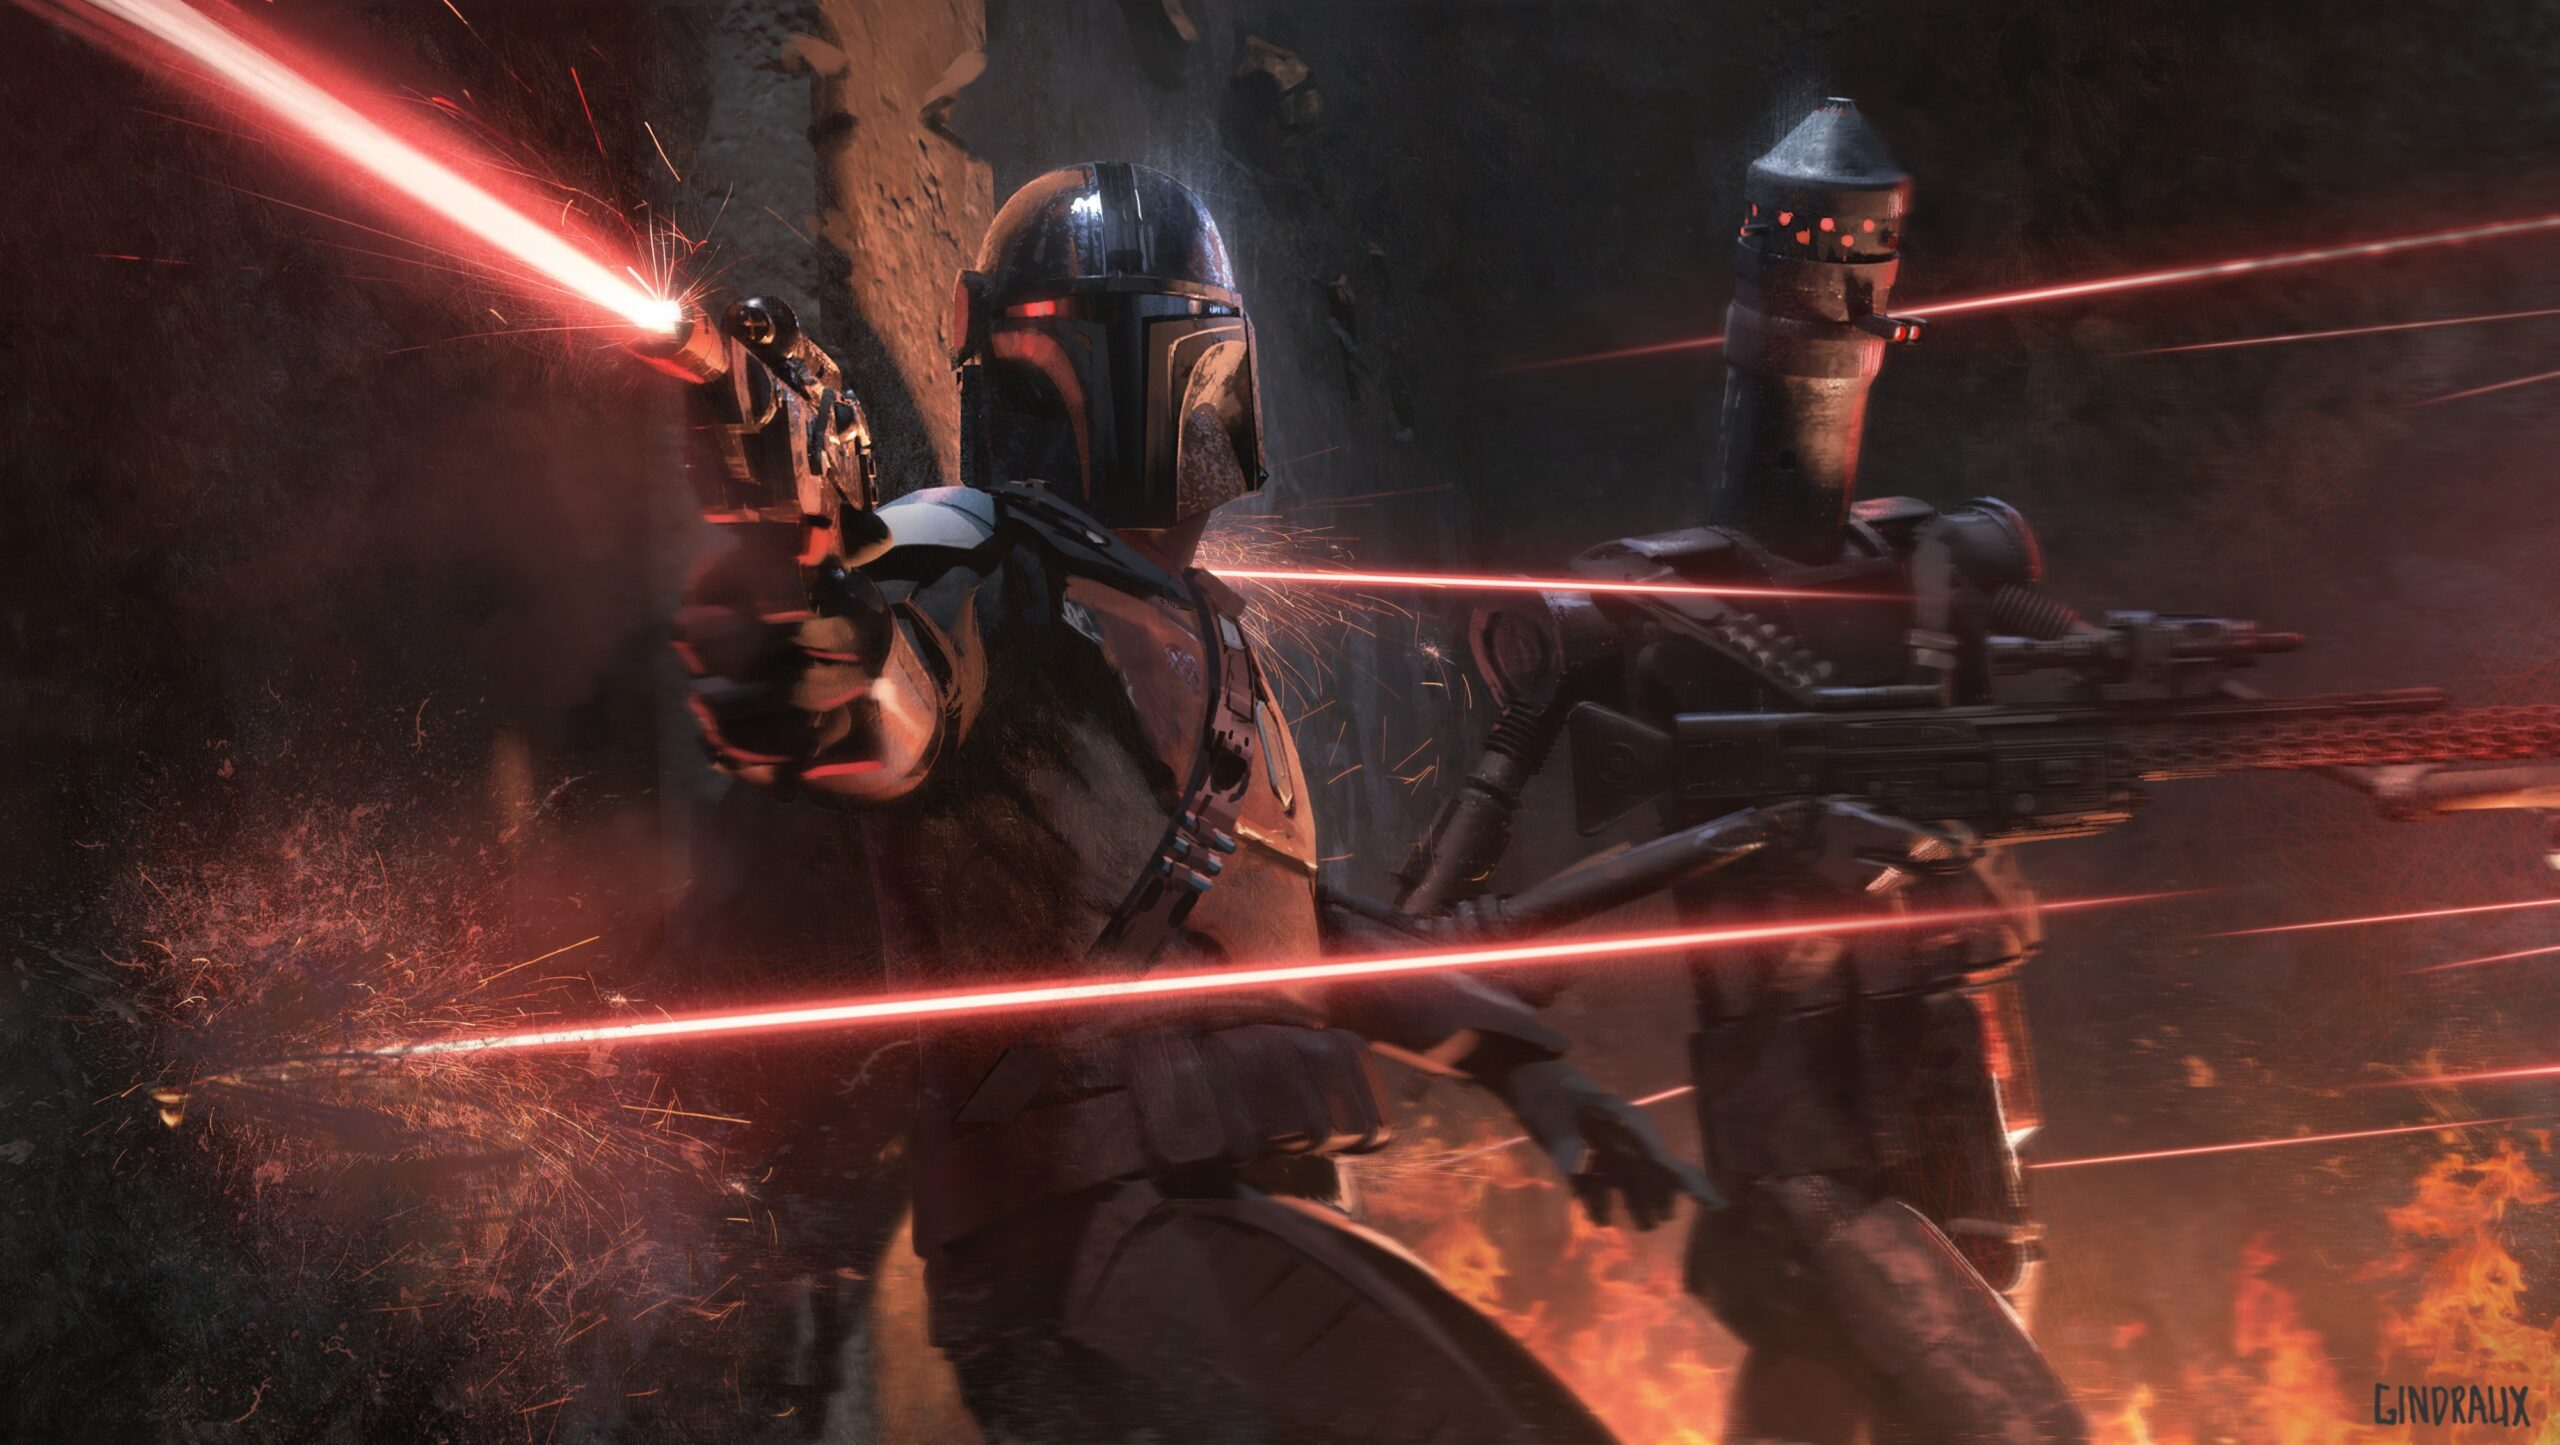 19 Beautiful Star Wars The Mandalorian Tv Series Concept Art